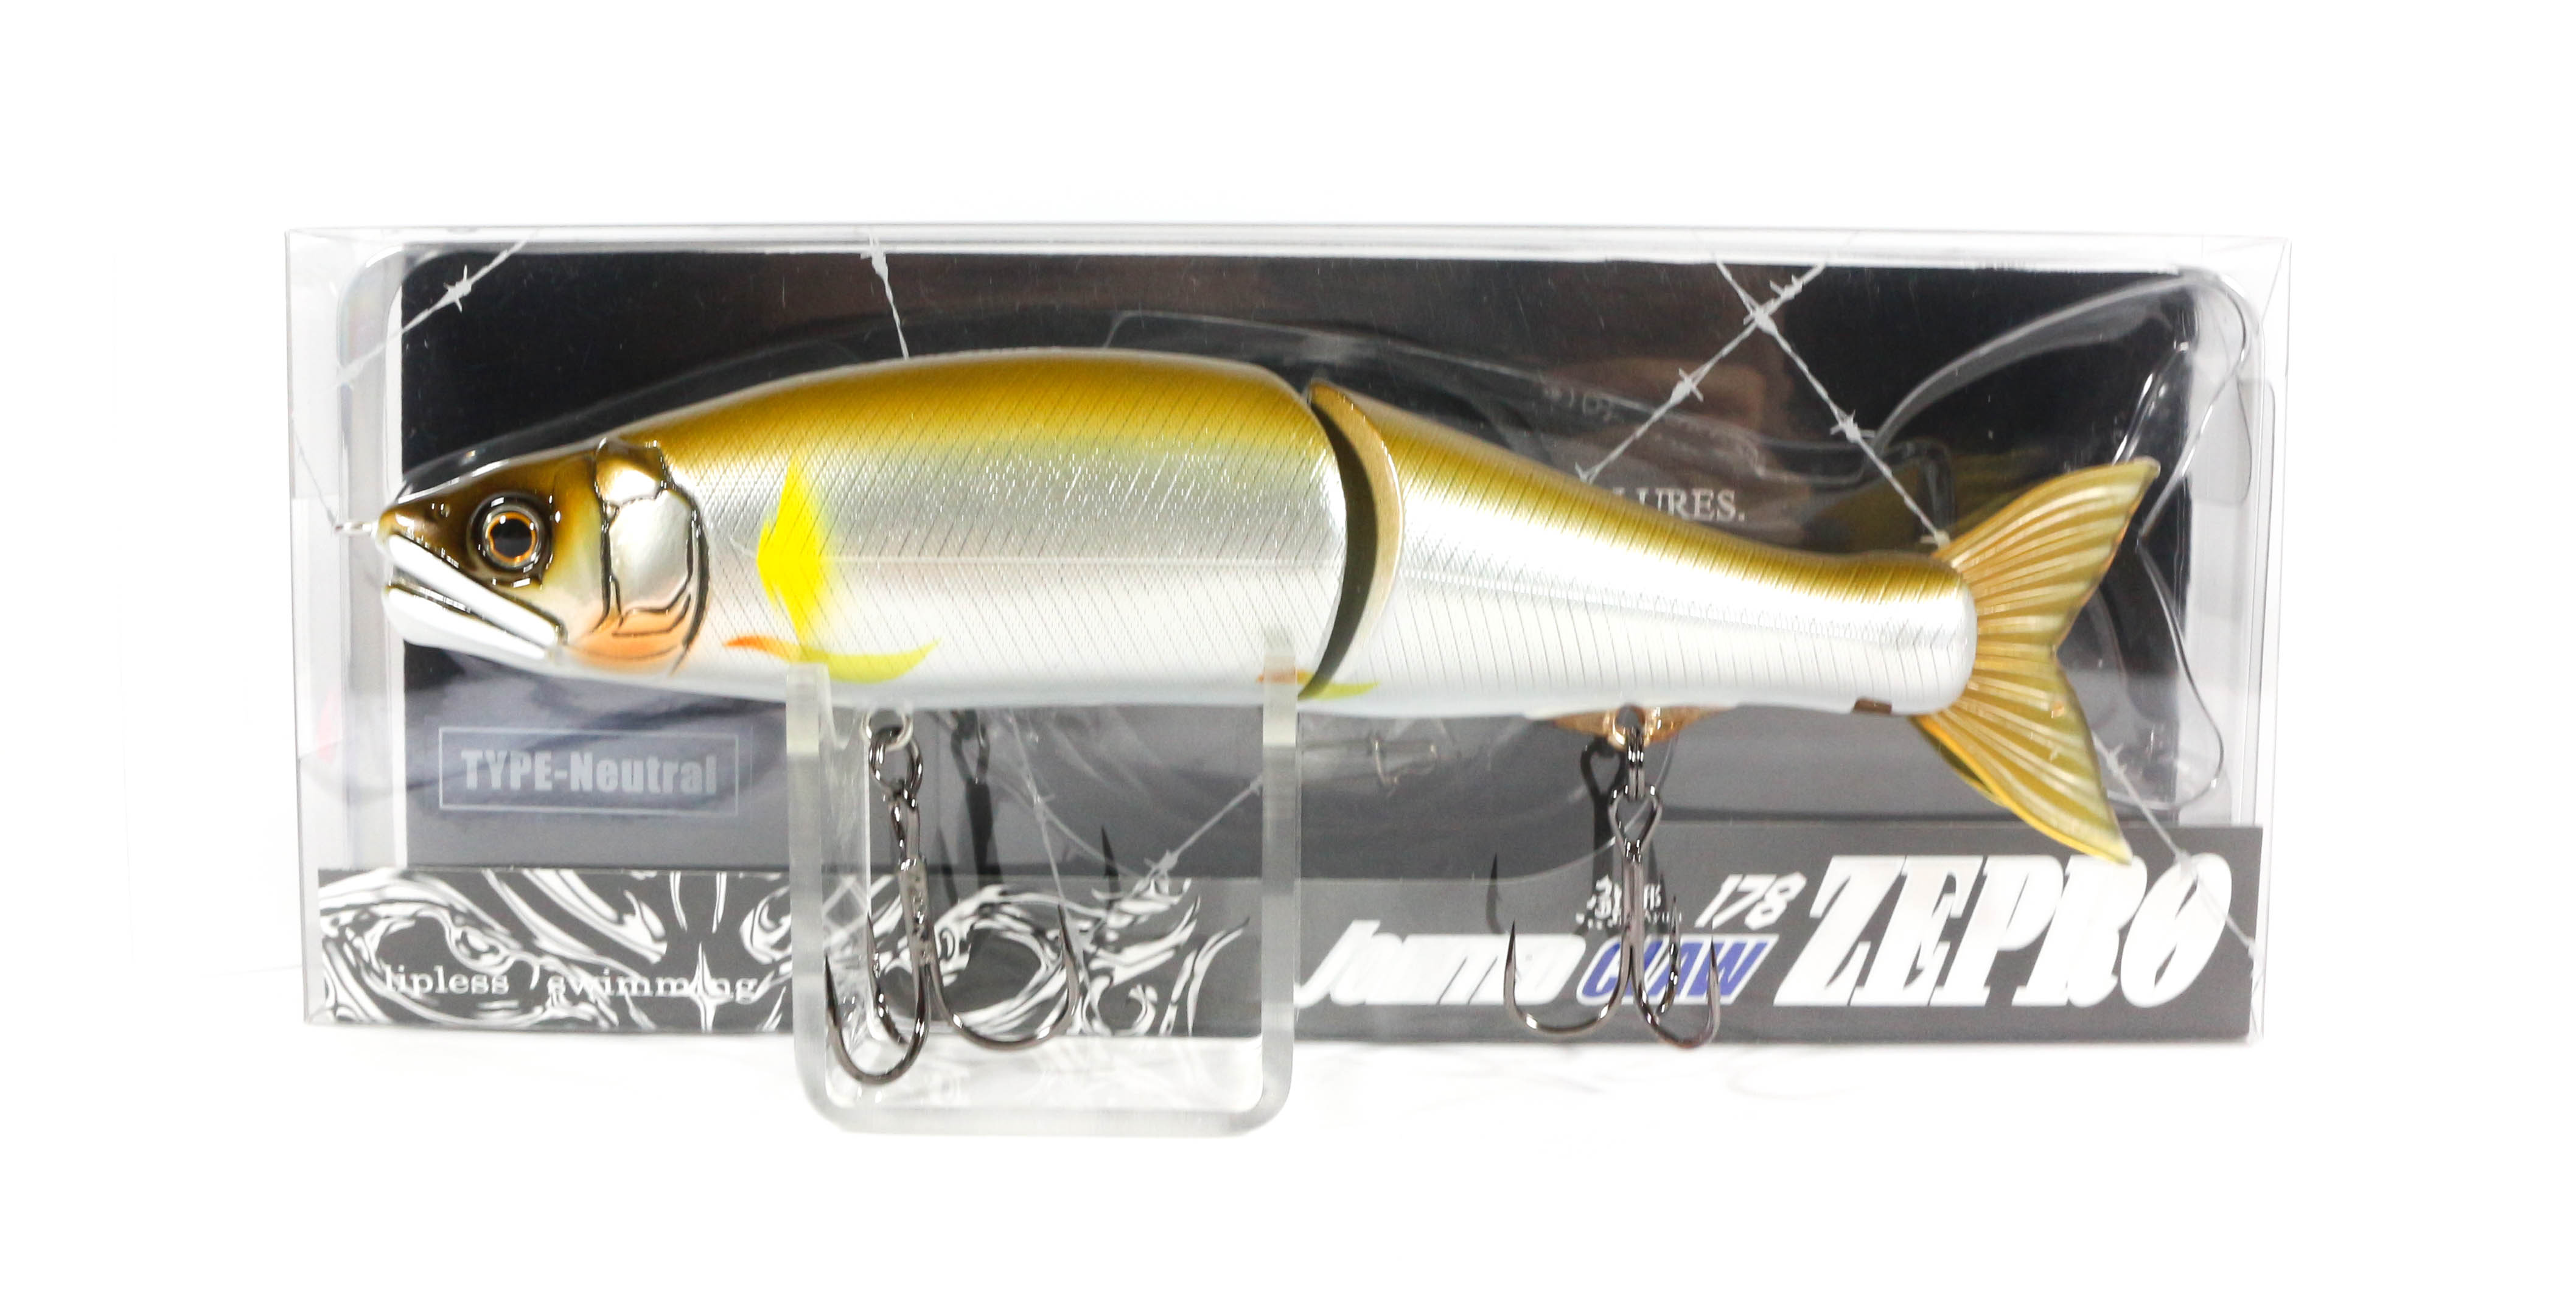 Gan Craft Jointed Claw 178 Zepro Neutral Suspend Jointed Lure 02 (0537)